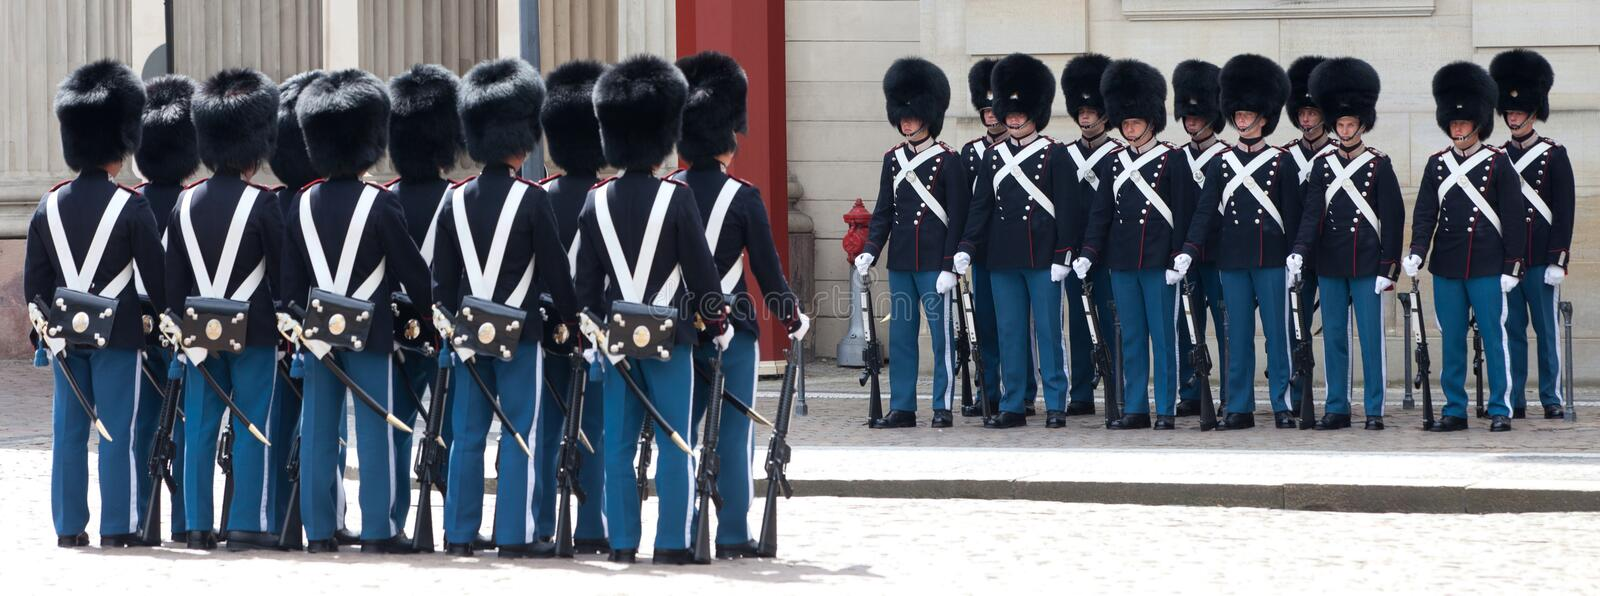 COPENHAGEN, DENMARK - MAY 17, 2012: Ð¡hanging of the honor guard at the Royal Palace Amalienborg in Copenhagen stock photography